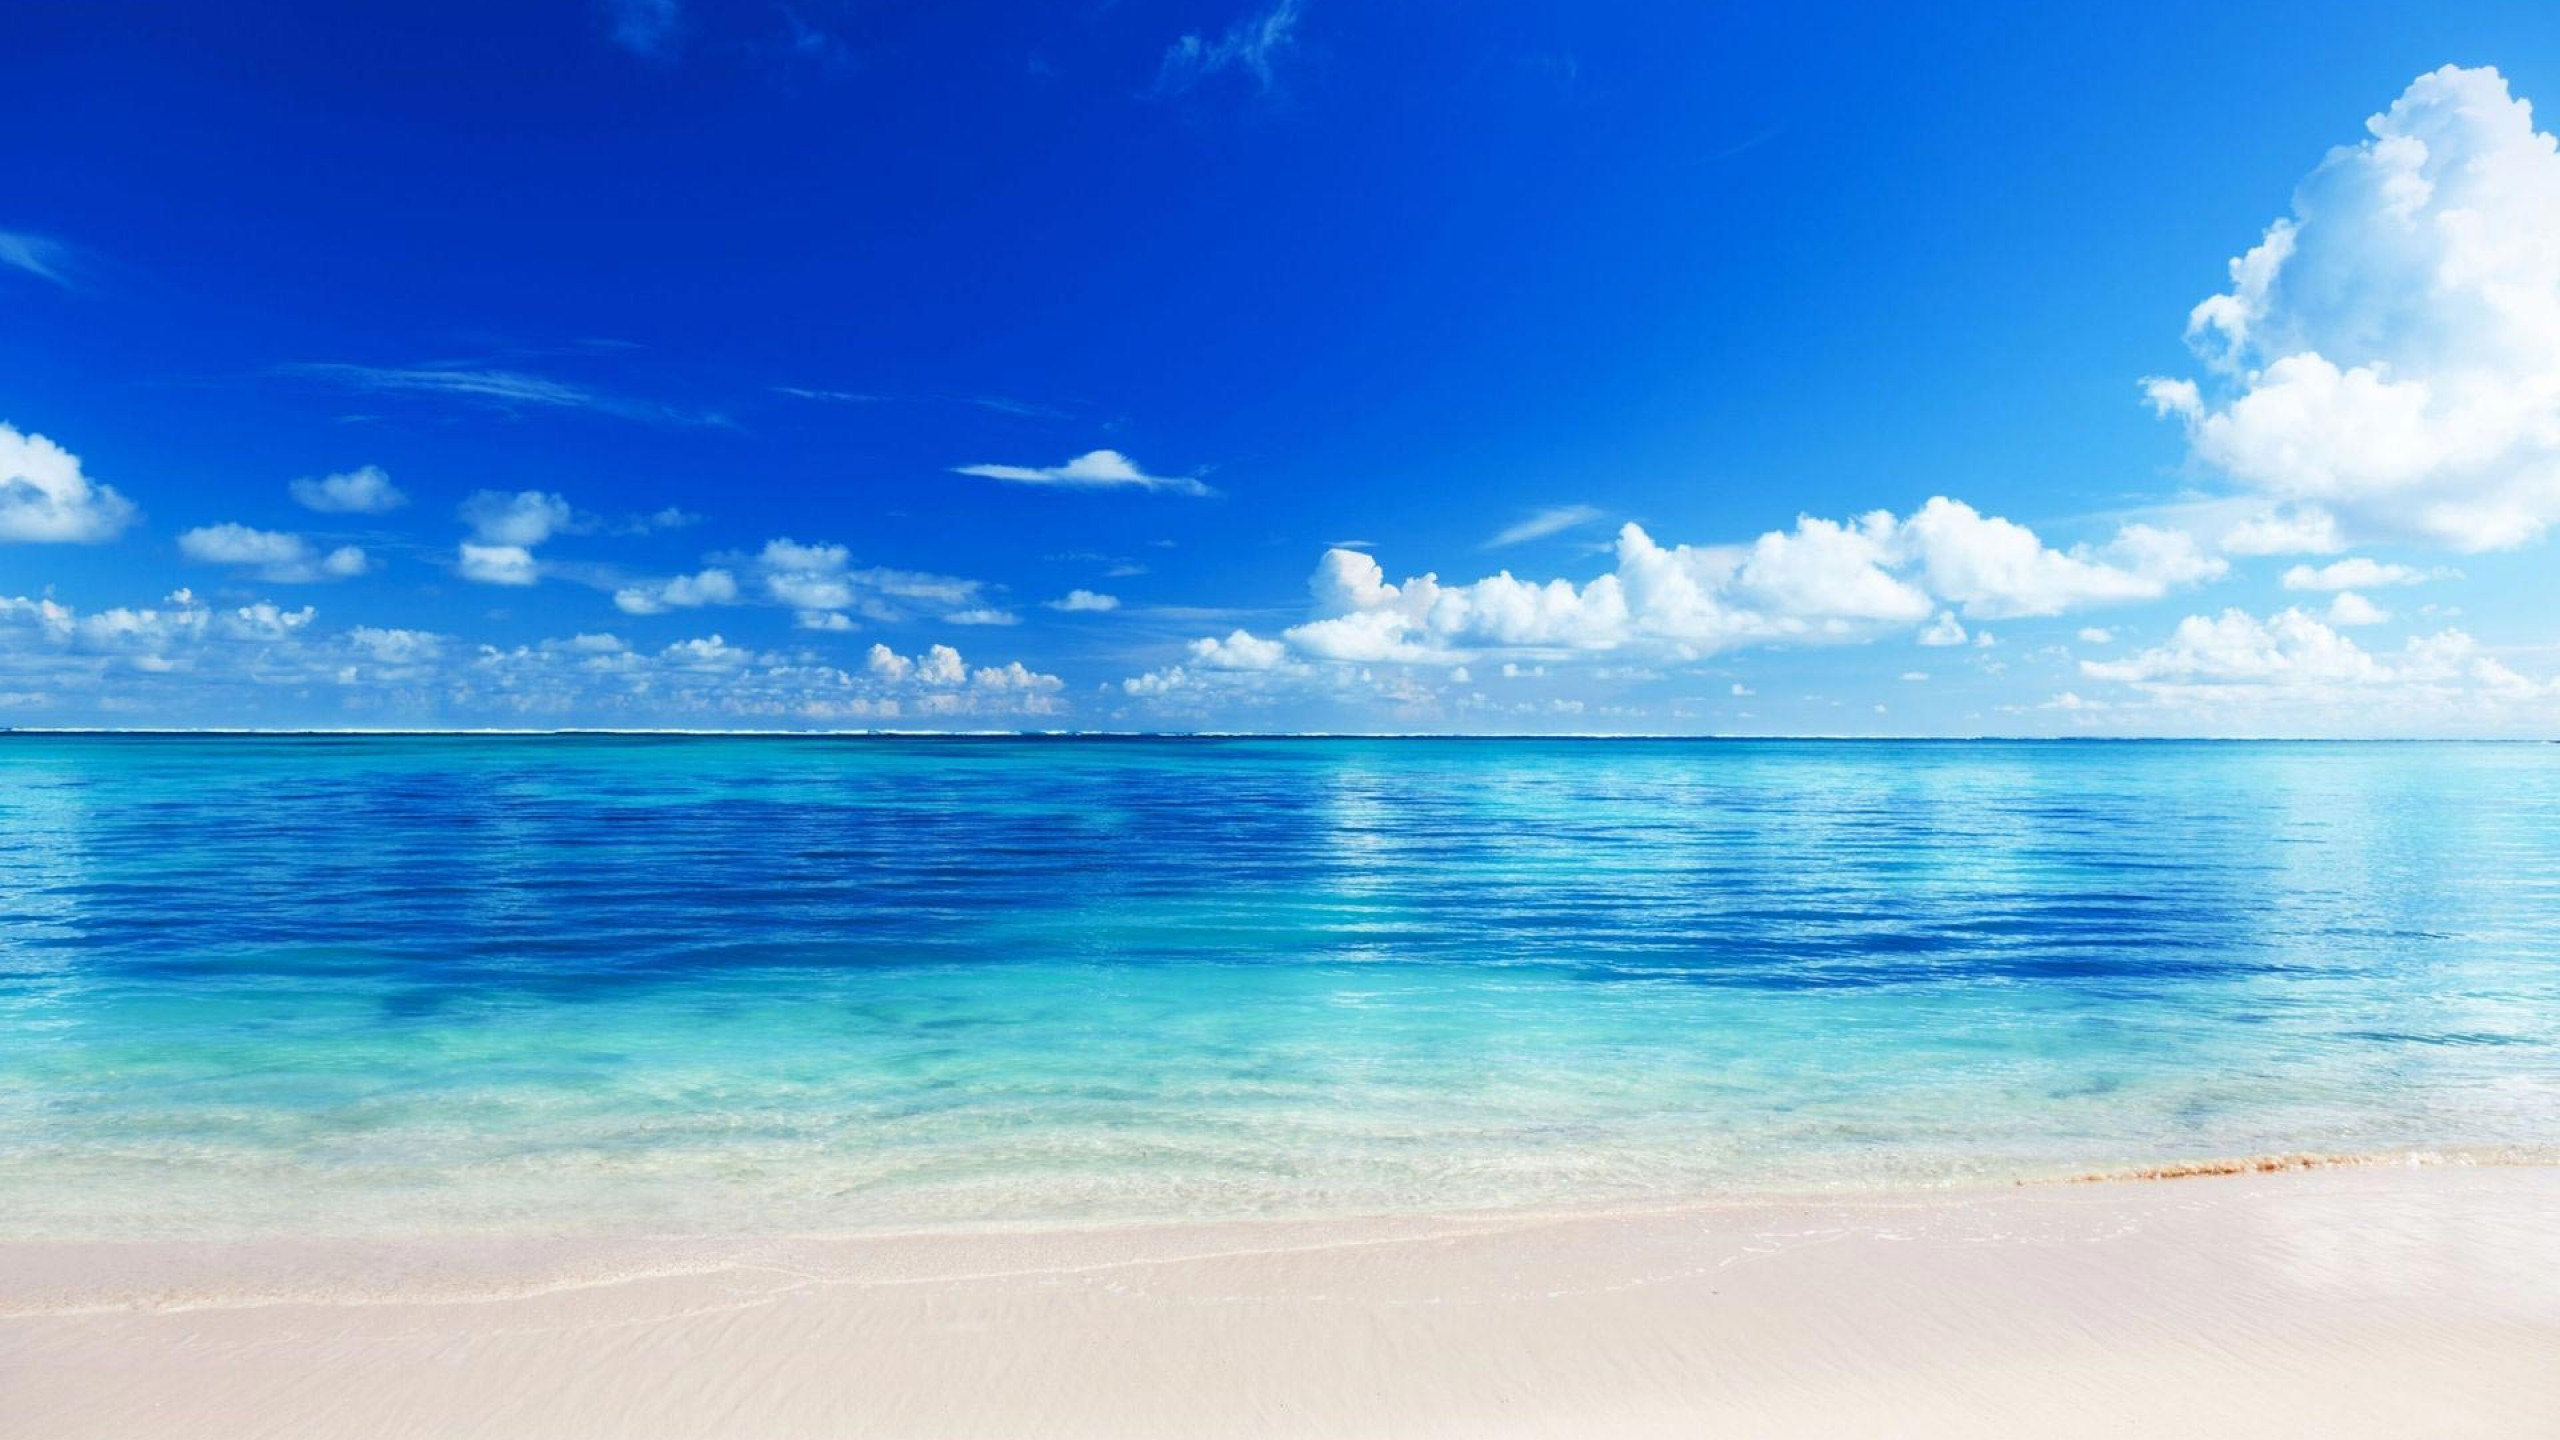 File Name 959582 Gallery For Blue Sea Wallpapers 2560x1440